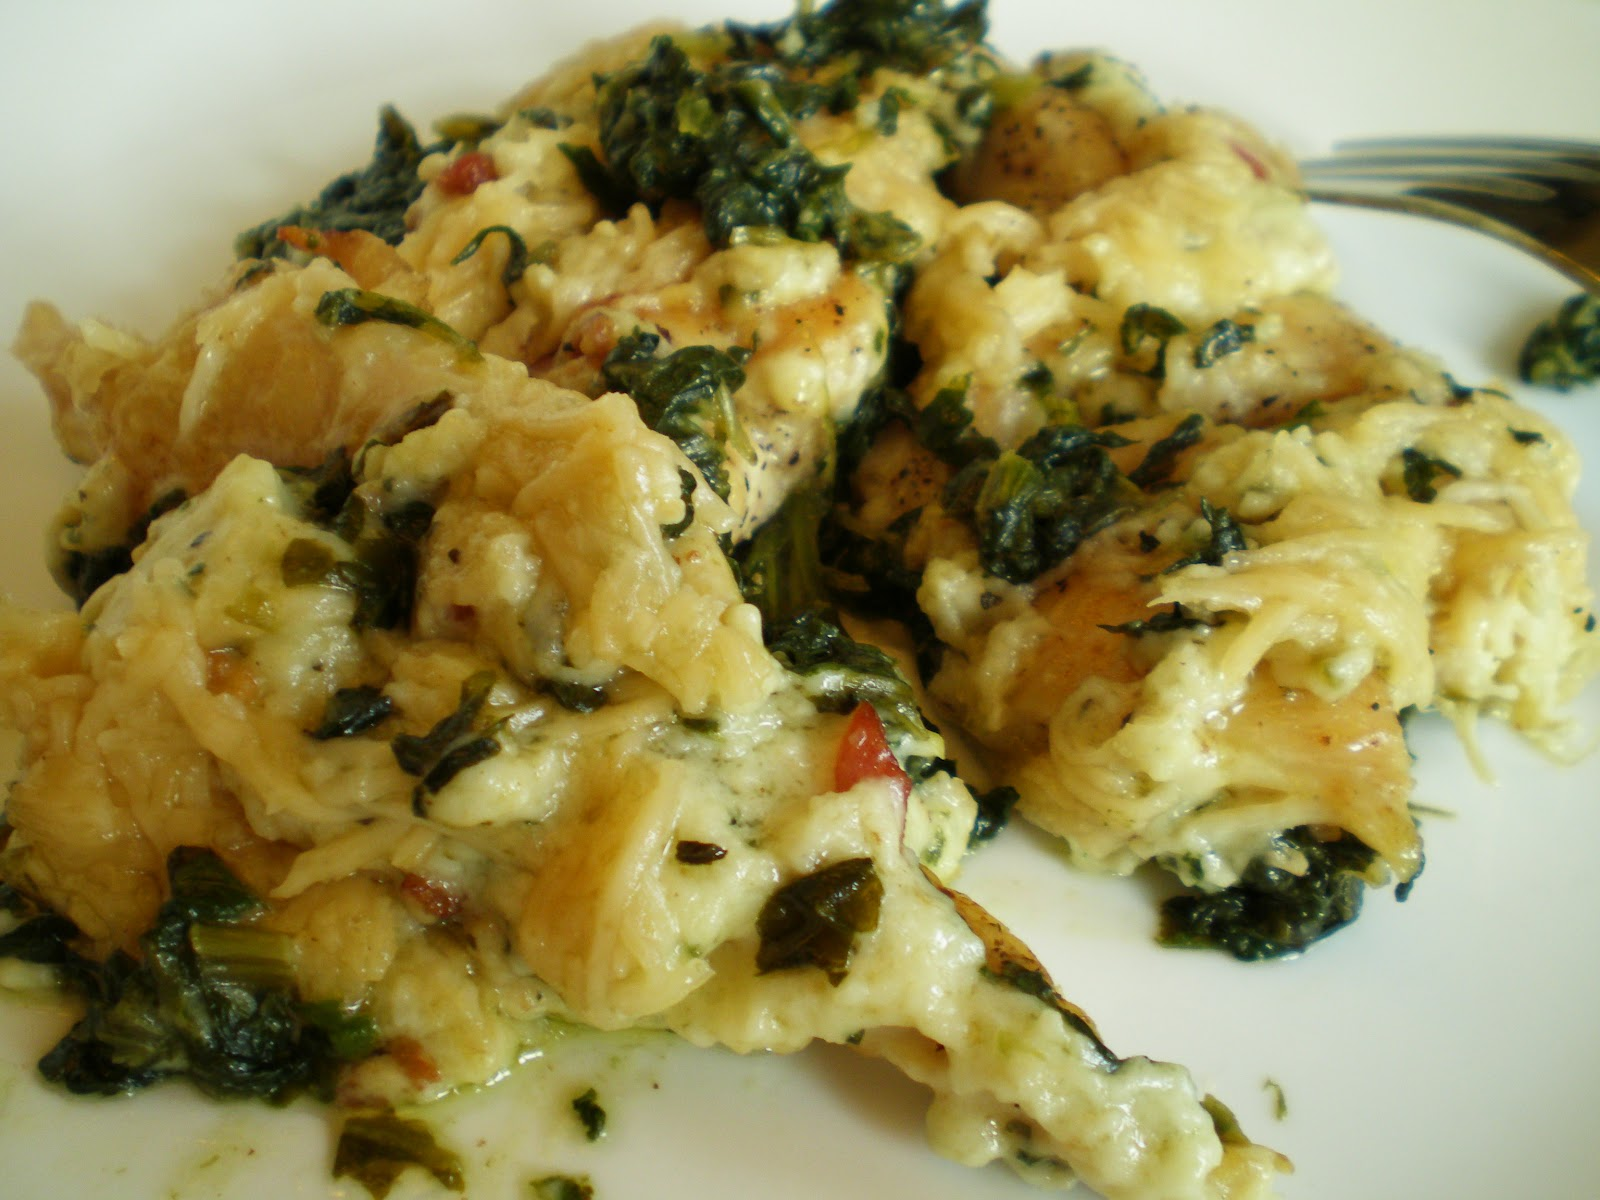 Basil and Rosemary's Kitchen: Chicken Florentine Casserole